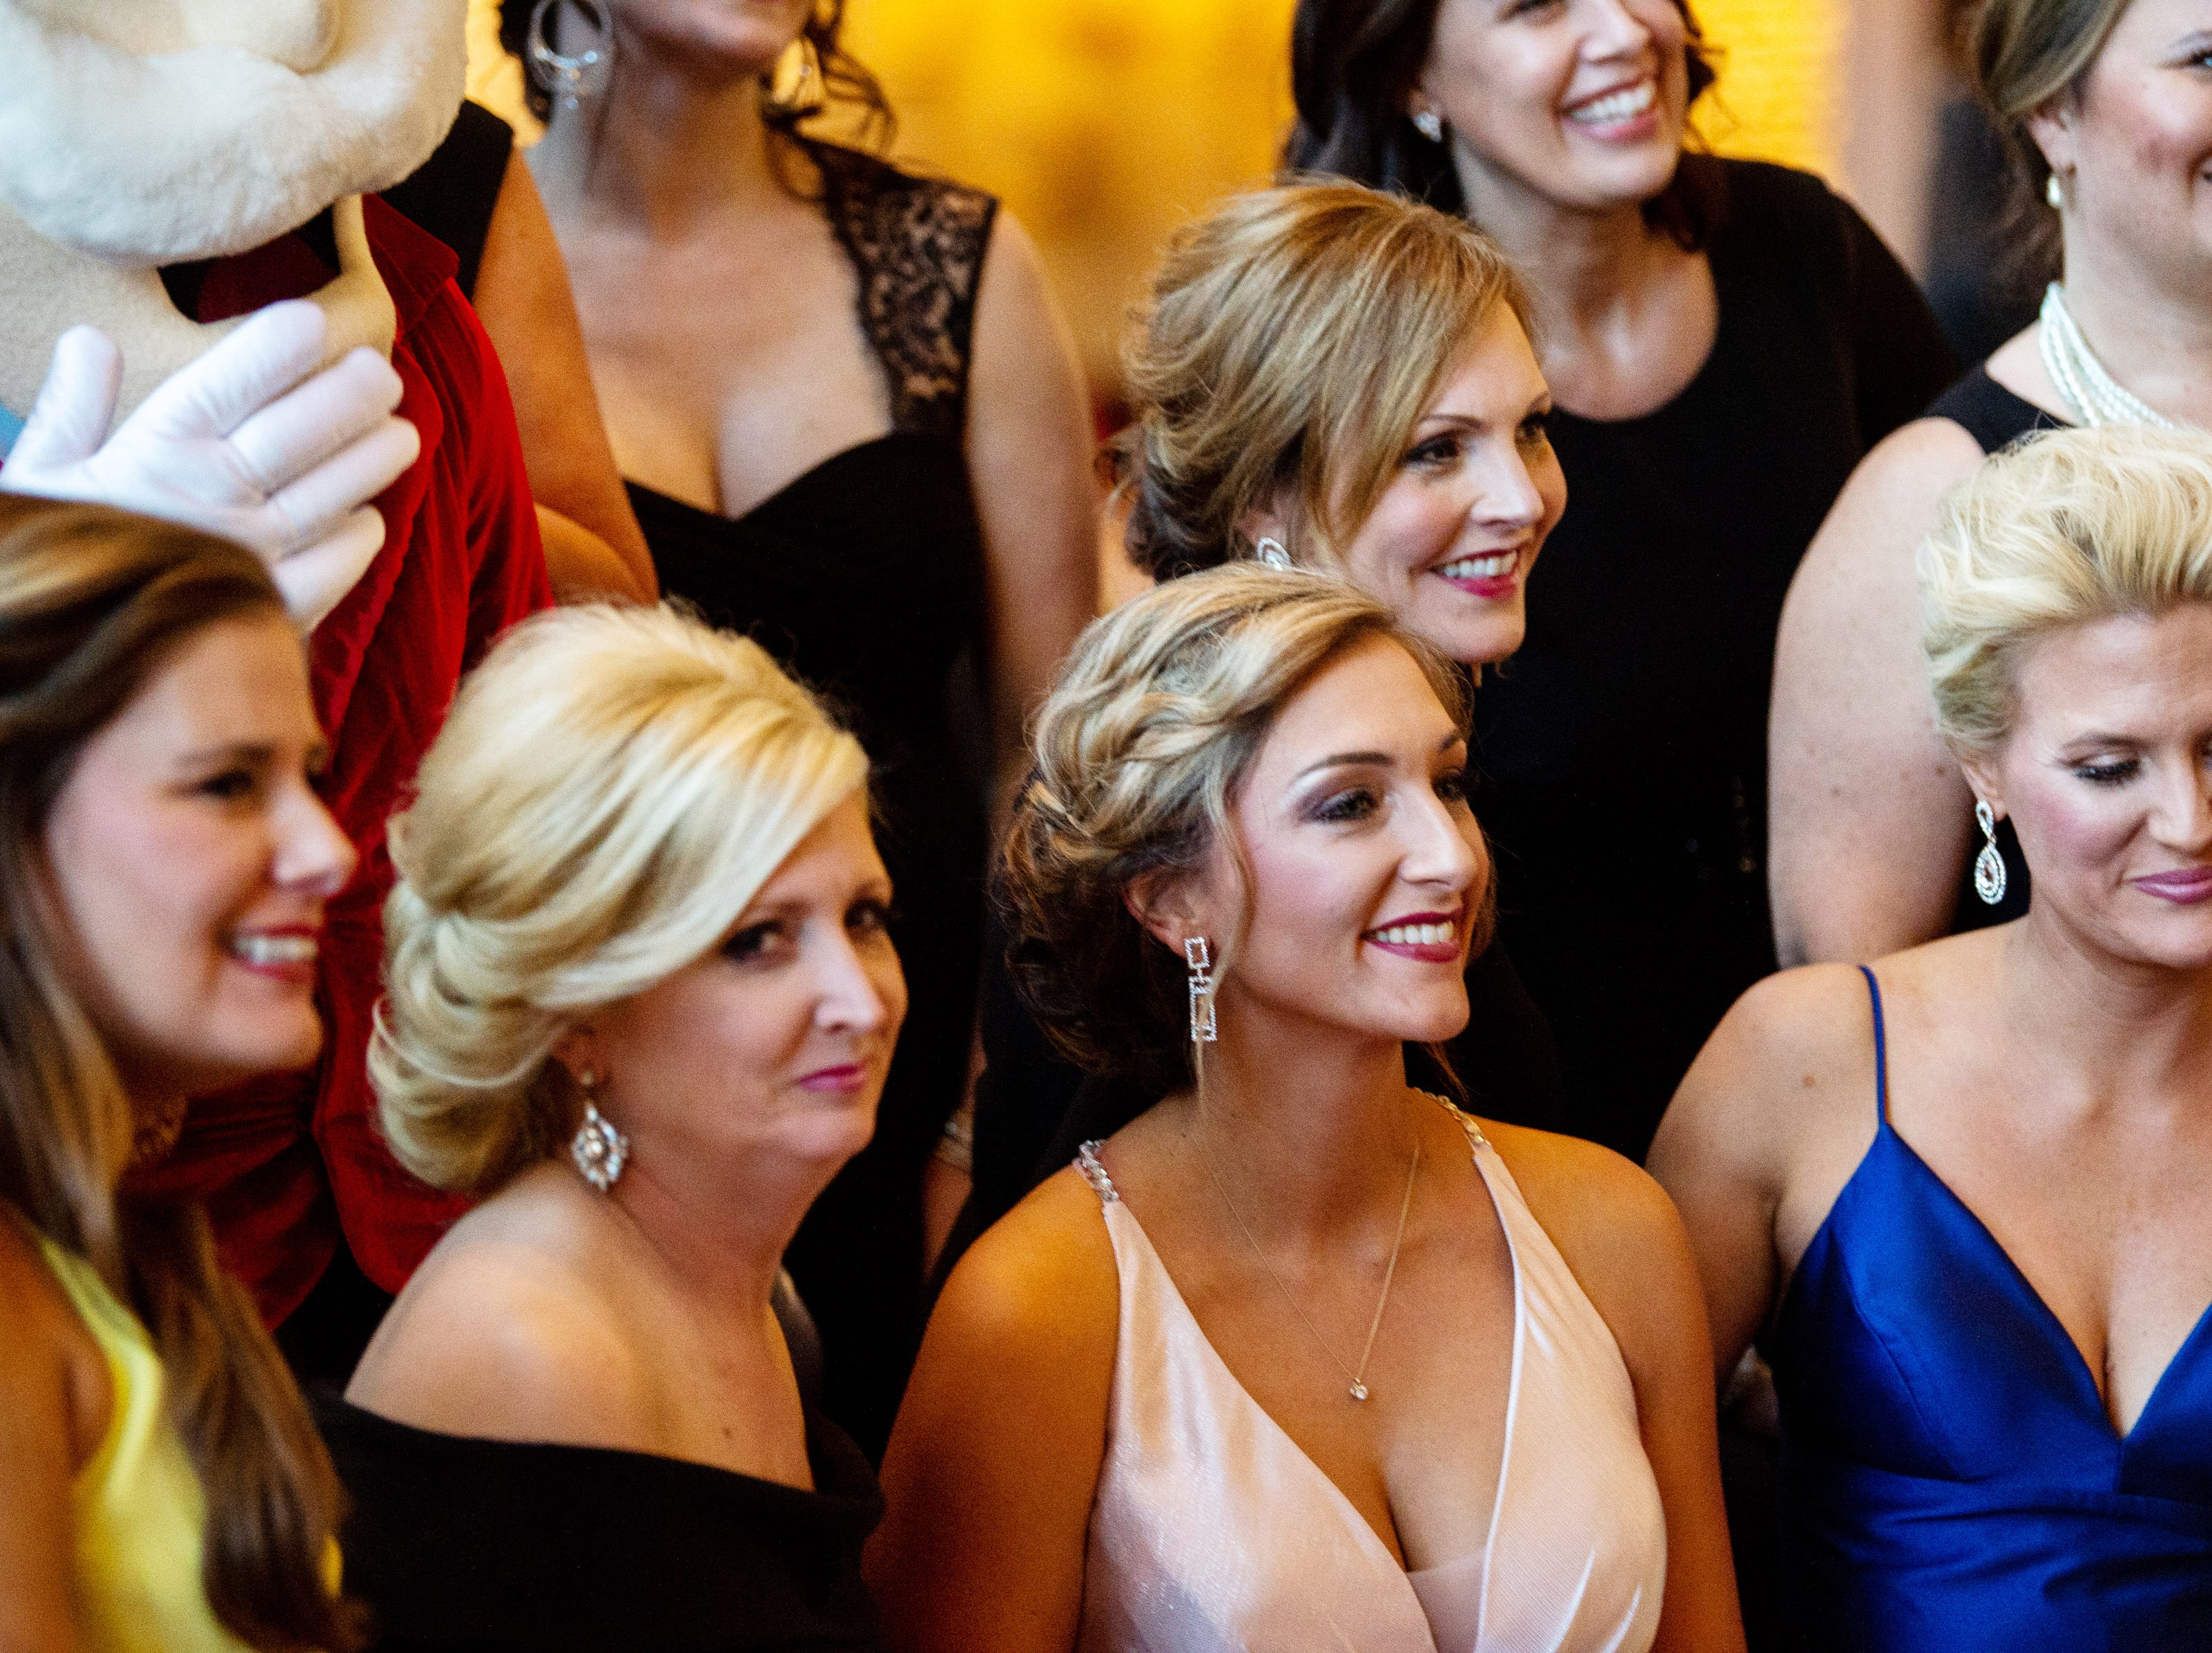 The Candlelight Ball's committee group poses for a photo during Austin Peay State University's annual Candlelight Ball at the Omni Nashville Hotel Saturday, March 16, 2019, in Nashville, Tenn.